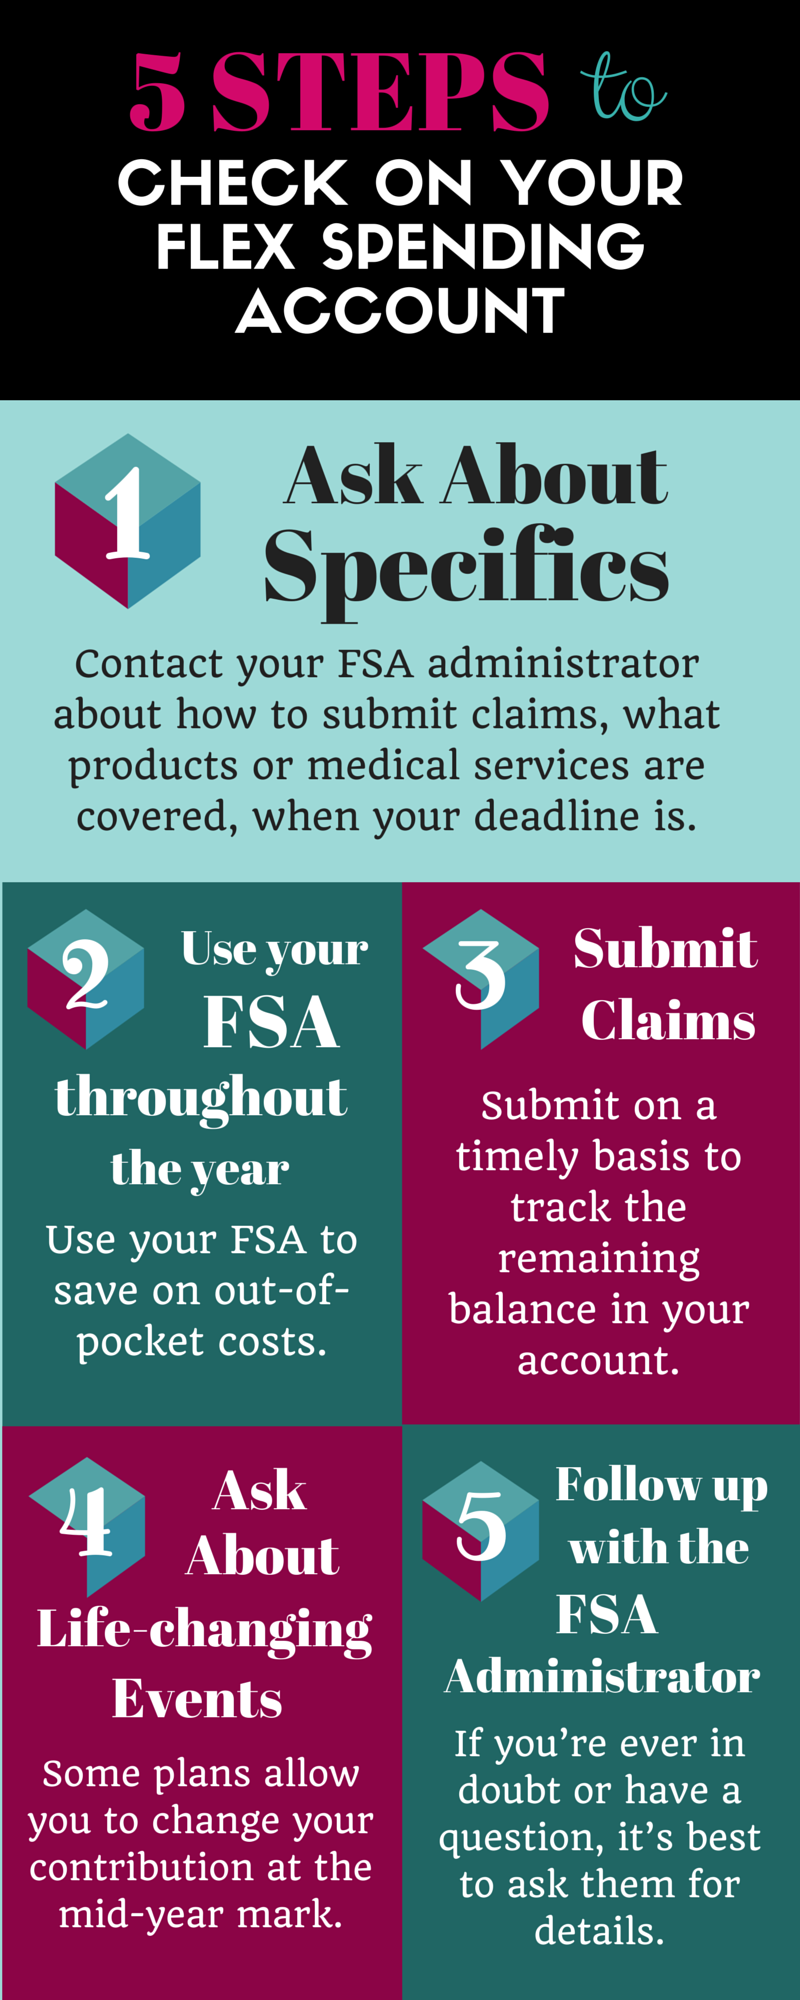 5 Flexible Spending Account Tips To Stay On Track With Images